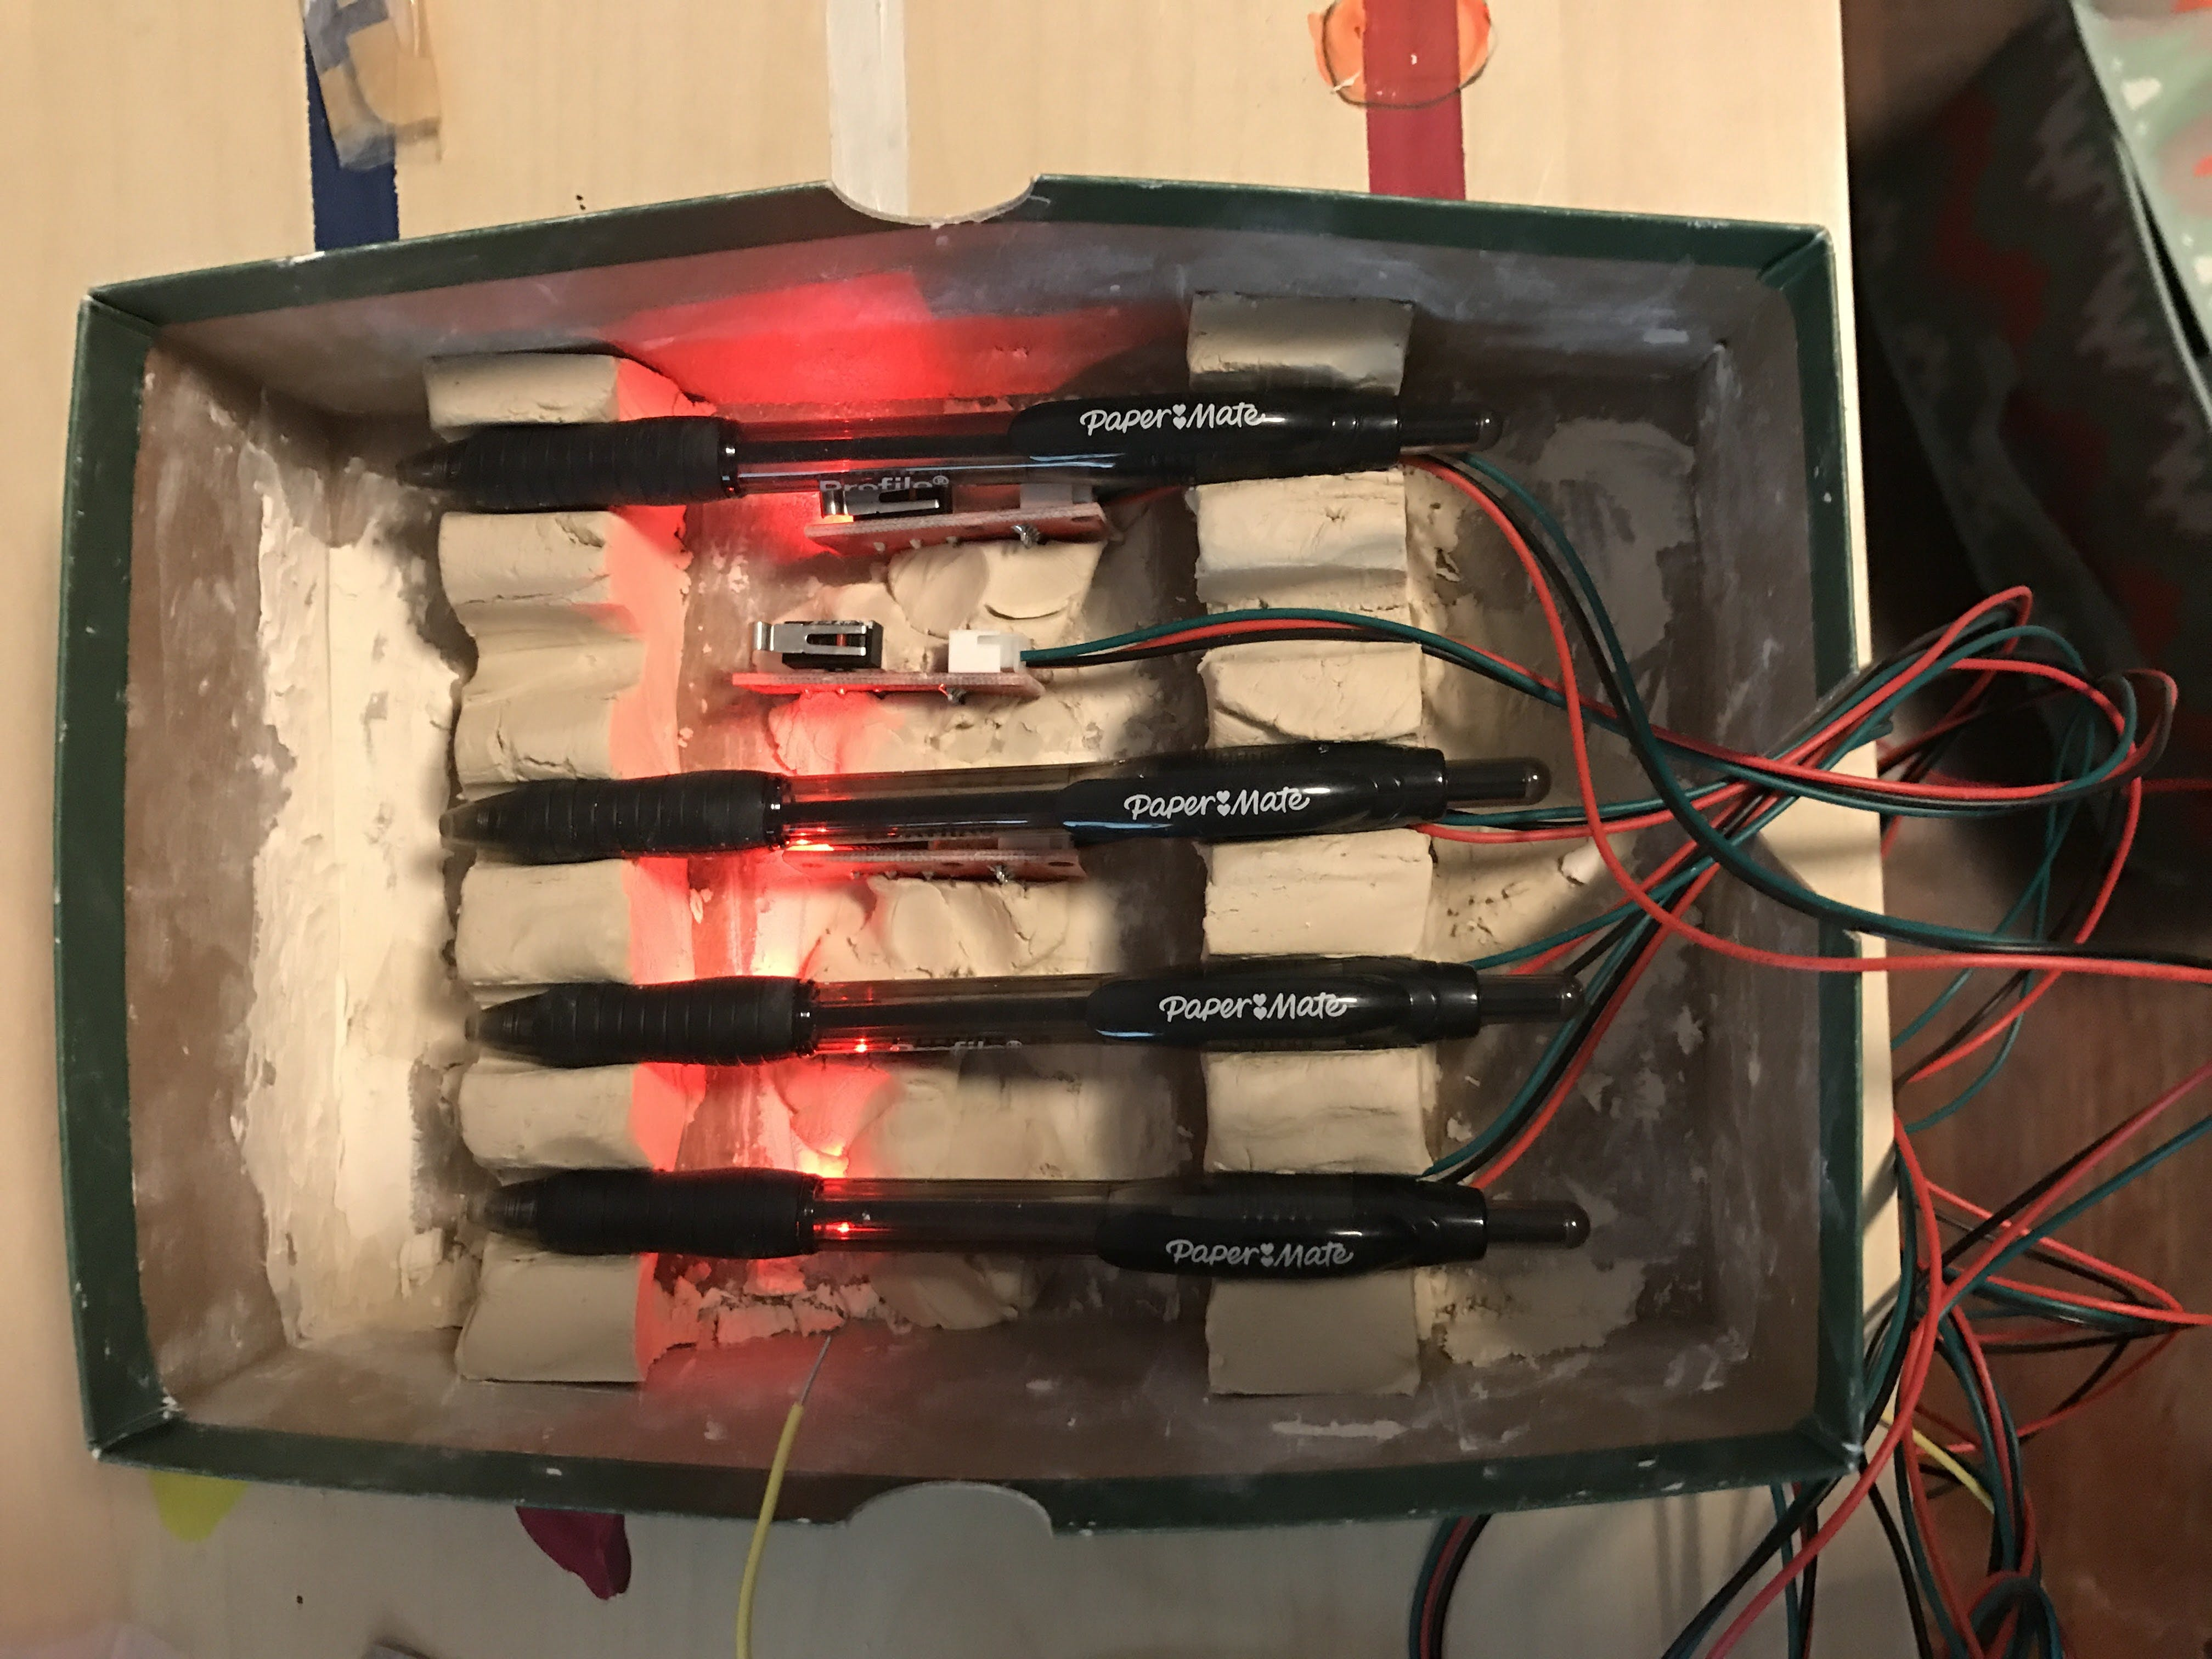 What it looks like when four pens are pressed down.